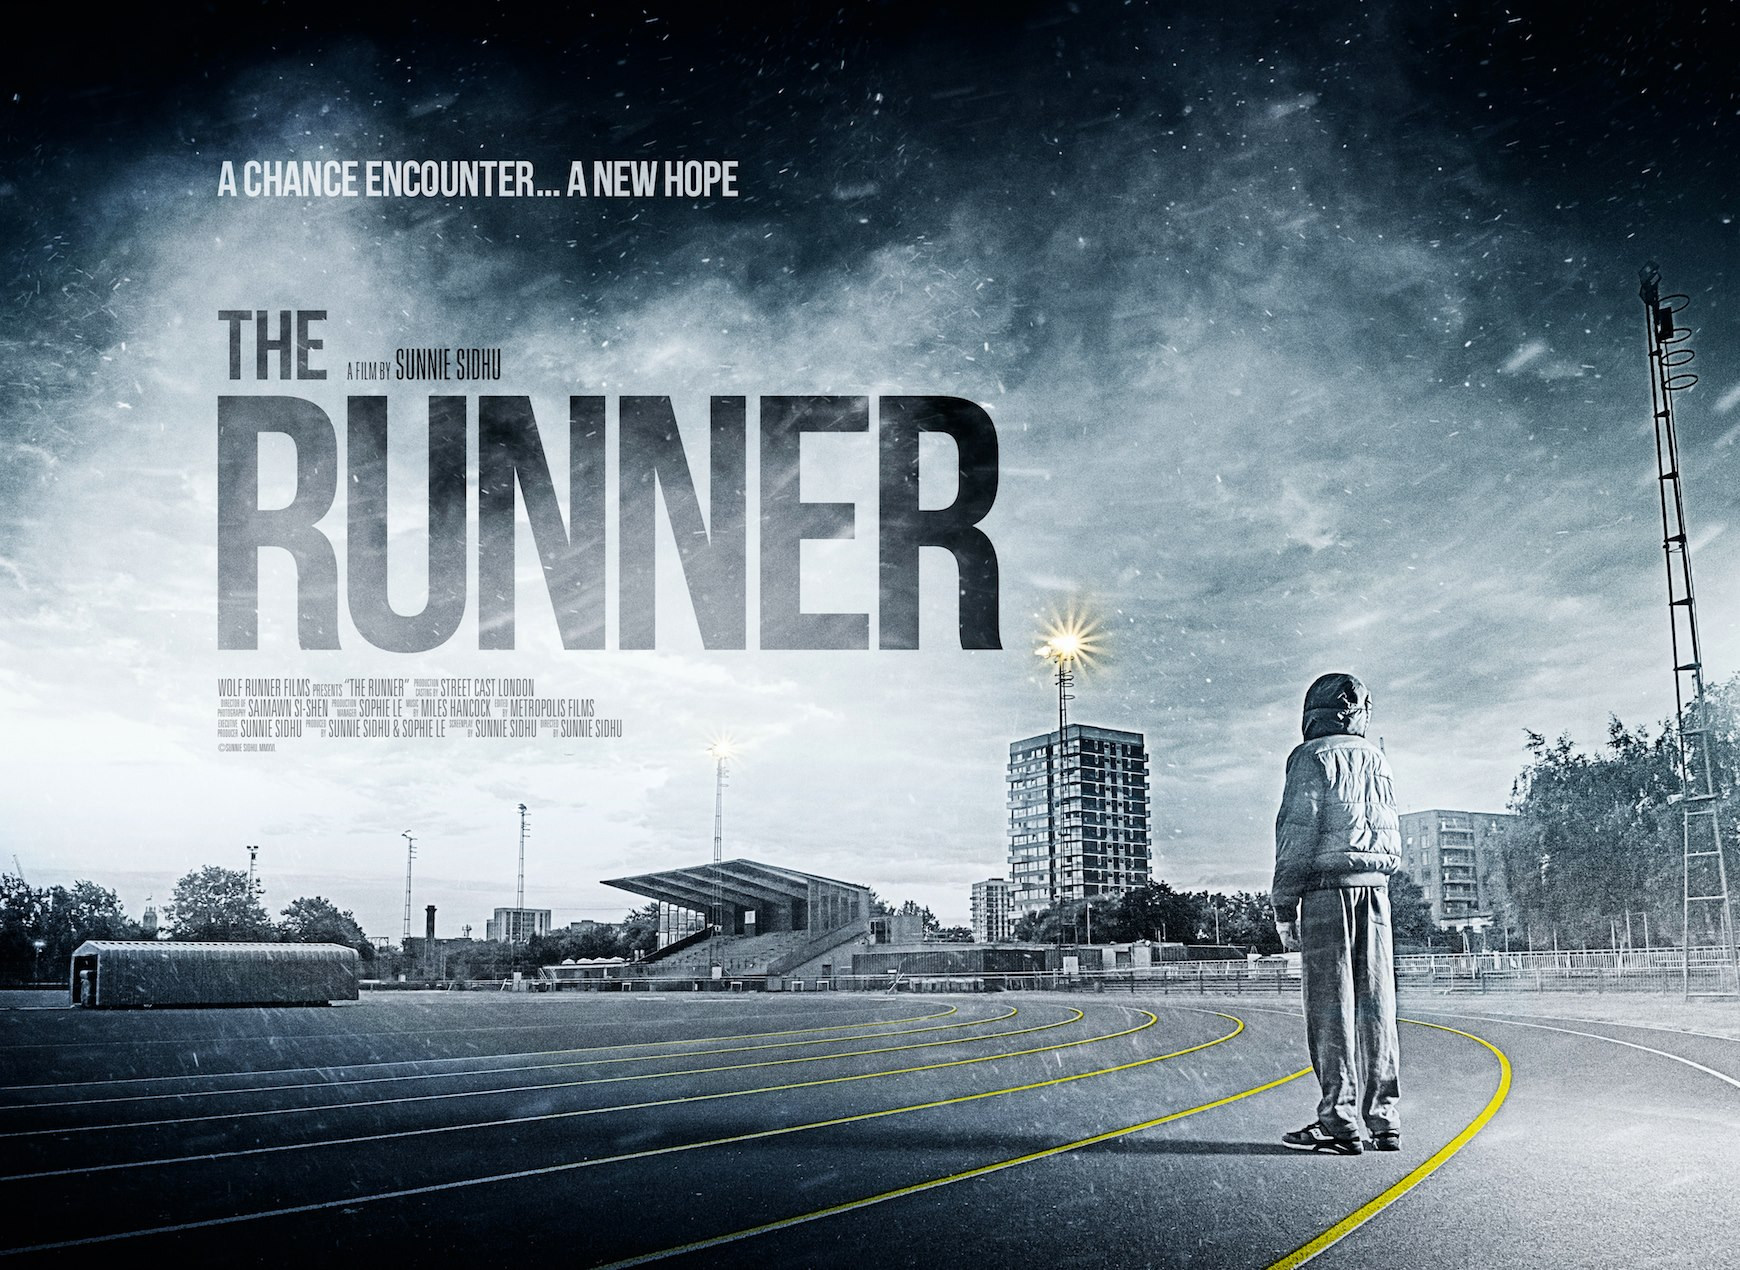 The Runner Film Poster design